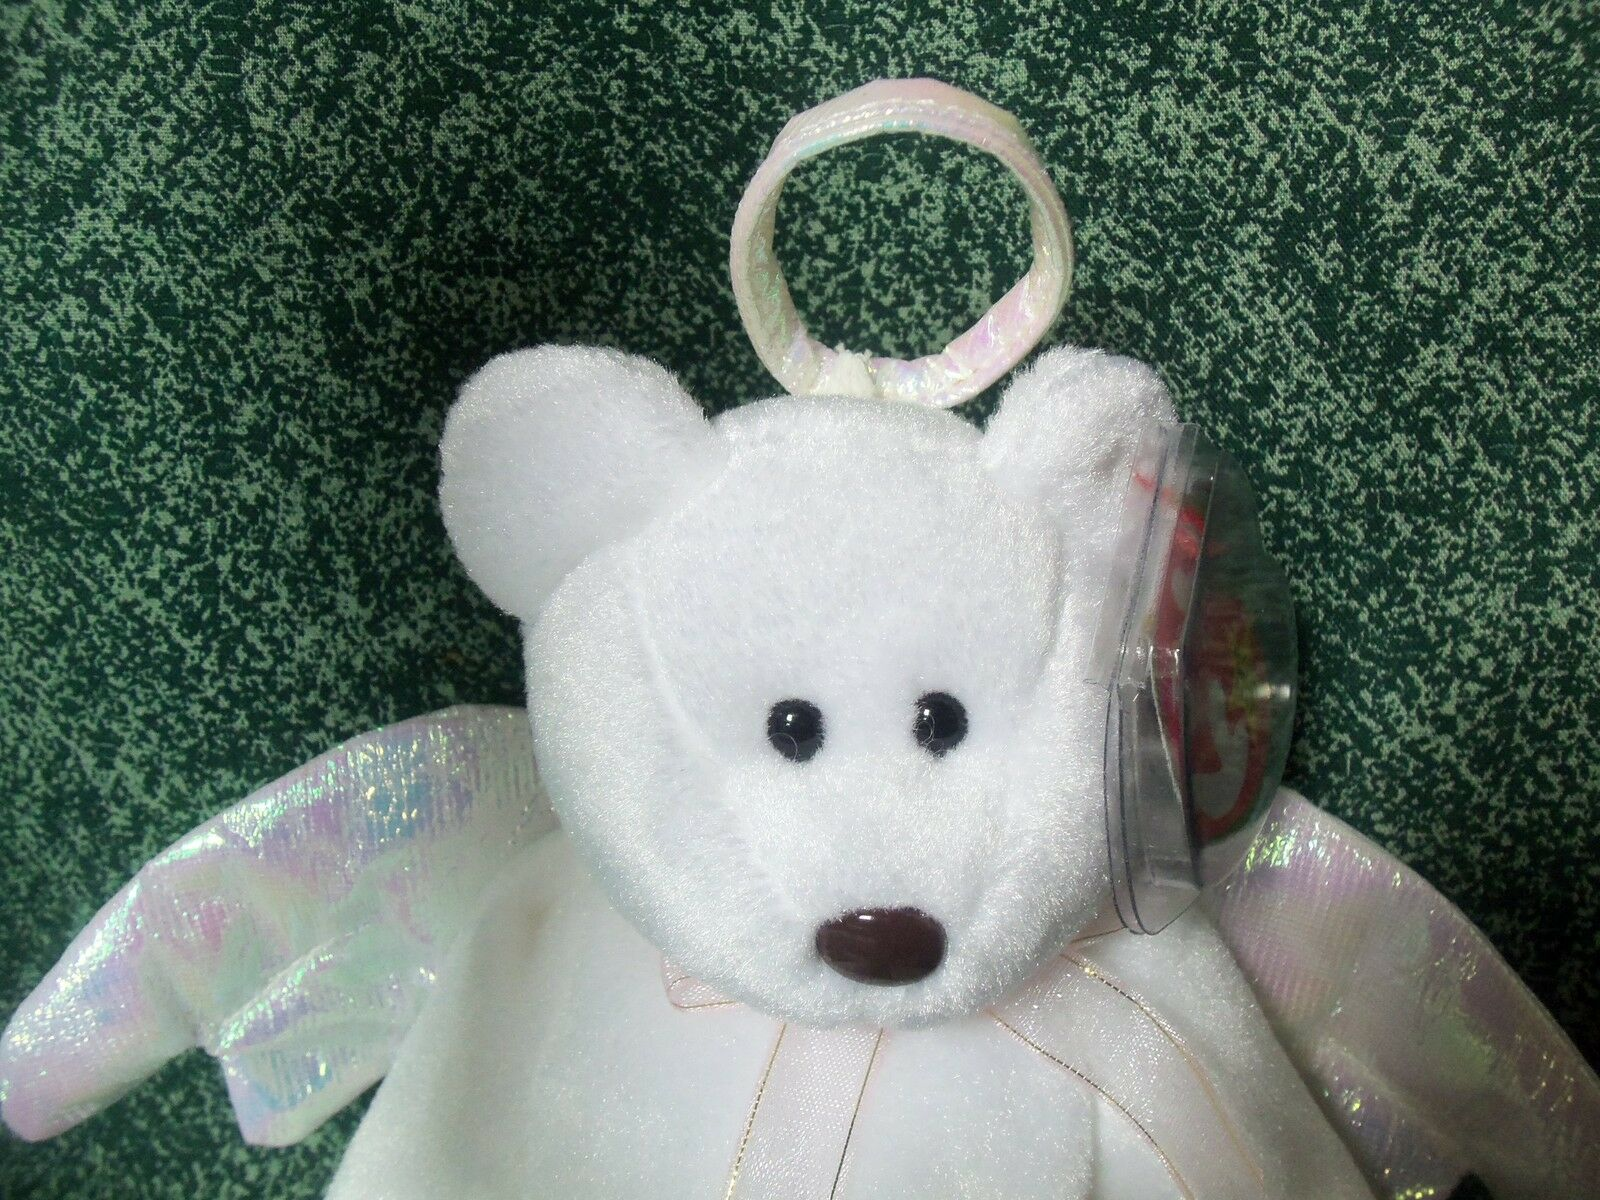 b5d816e3f10 Halo The Angel Bear - TY Beanie Baby 1998 MINT for sale online